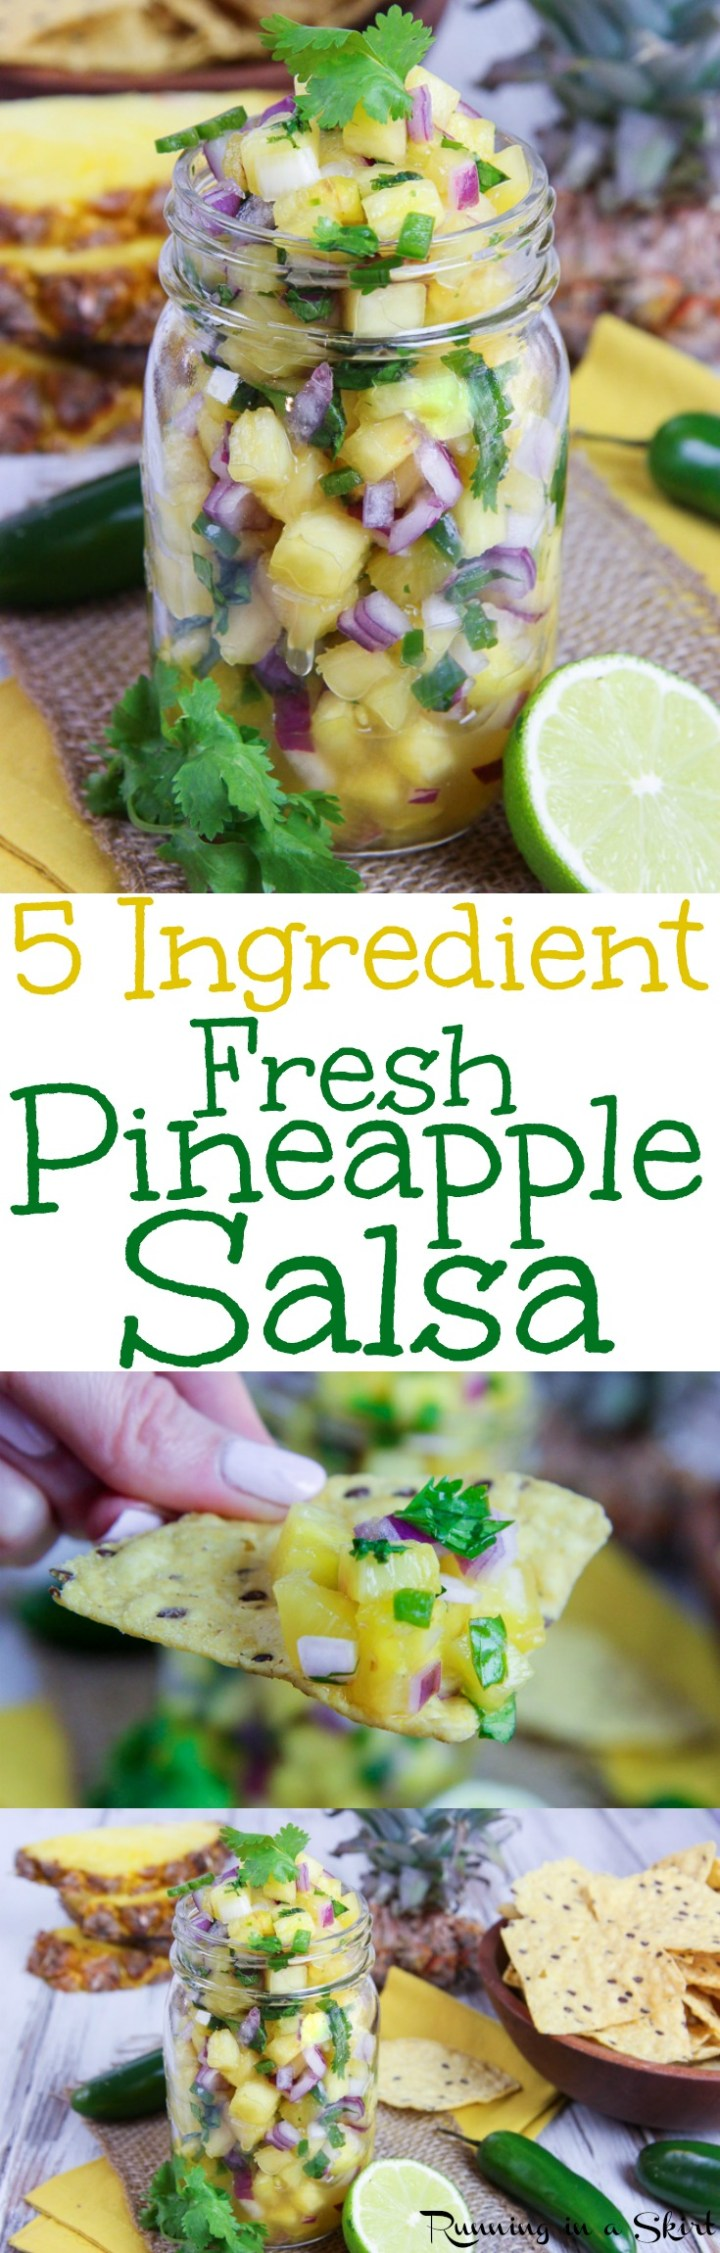 5 Ingredient Fresh Pineapple Salsa recipe - Perfect with tortilla chips or for fish tacos. This easy and simple Mexican dip is sweet, homemade and delicious. Great for any fish like salmon, tilapia, mahi mahi or tuna. No tomatoes! Vegan, Vegetarian & Gluten Free/ Running in a Skirt via @juliewunder